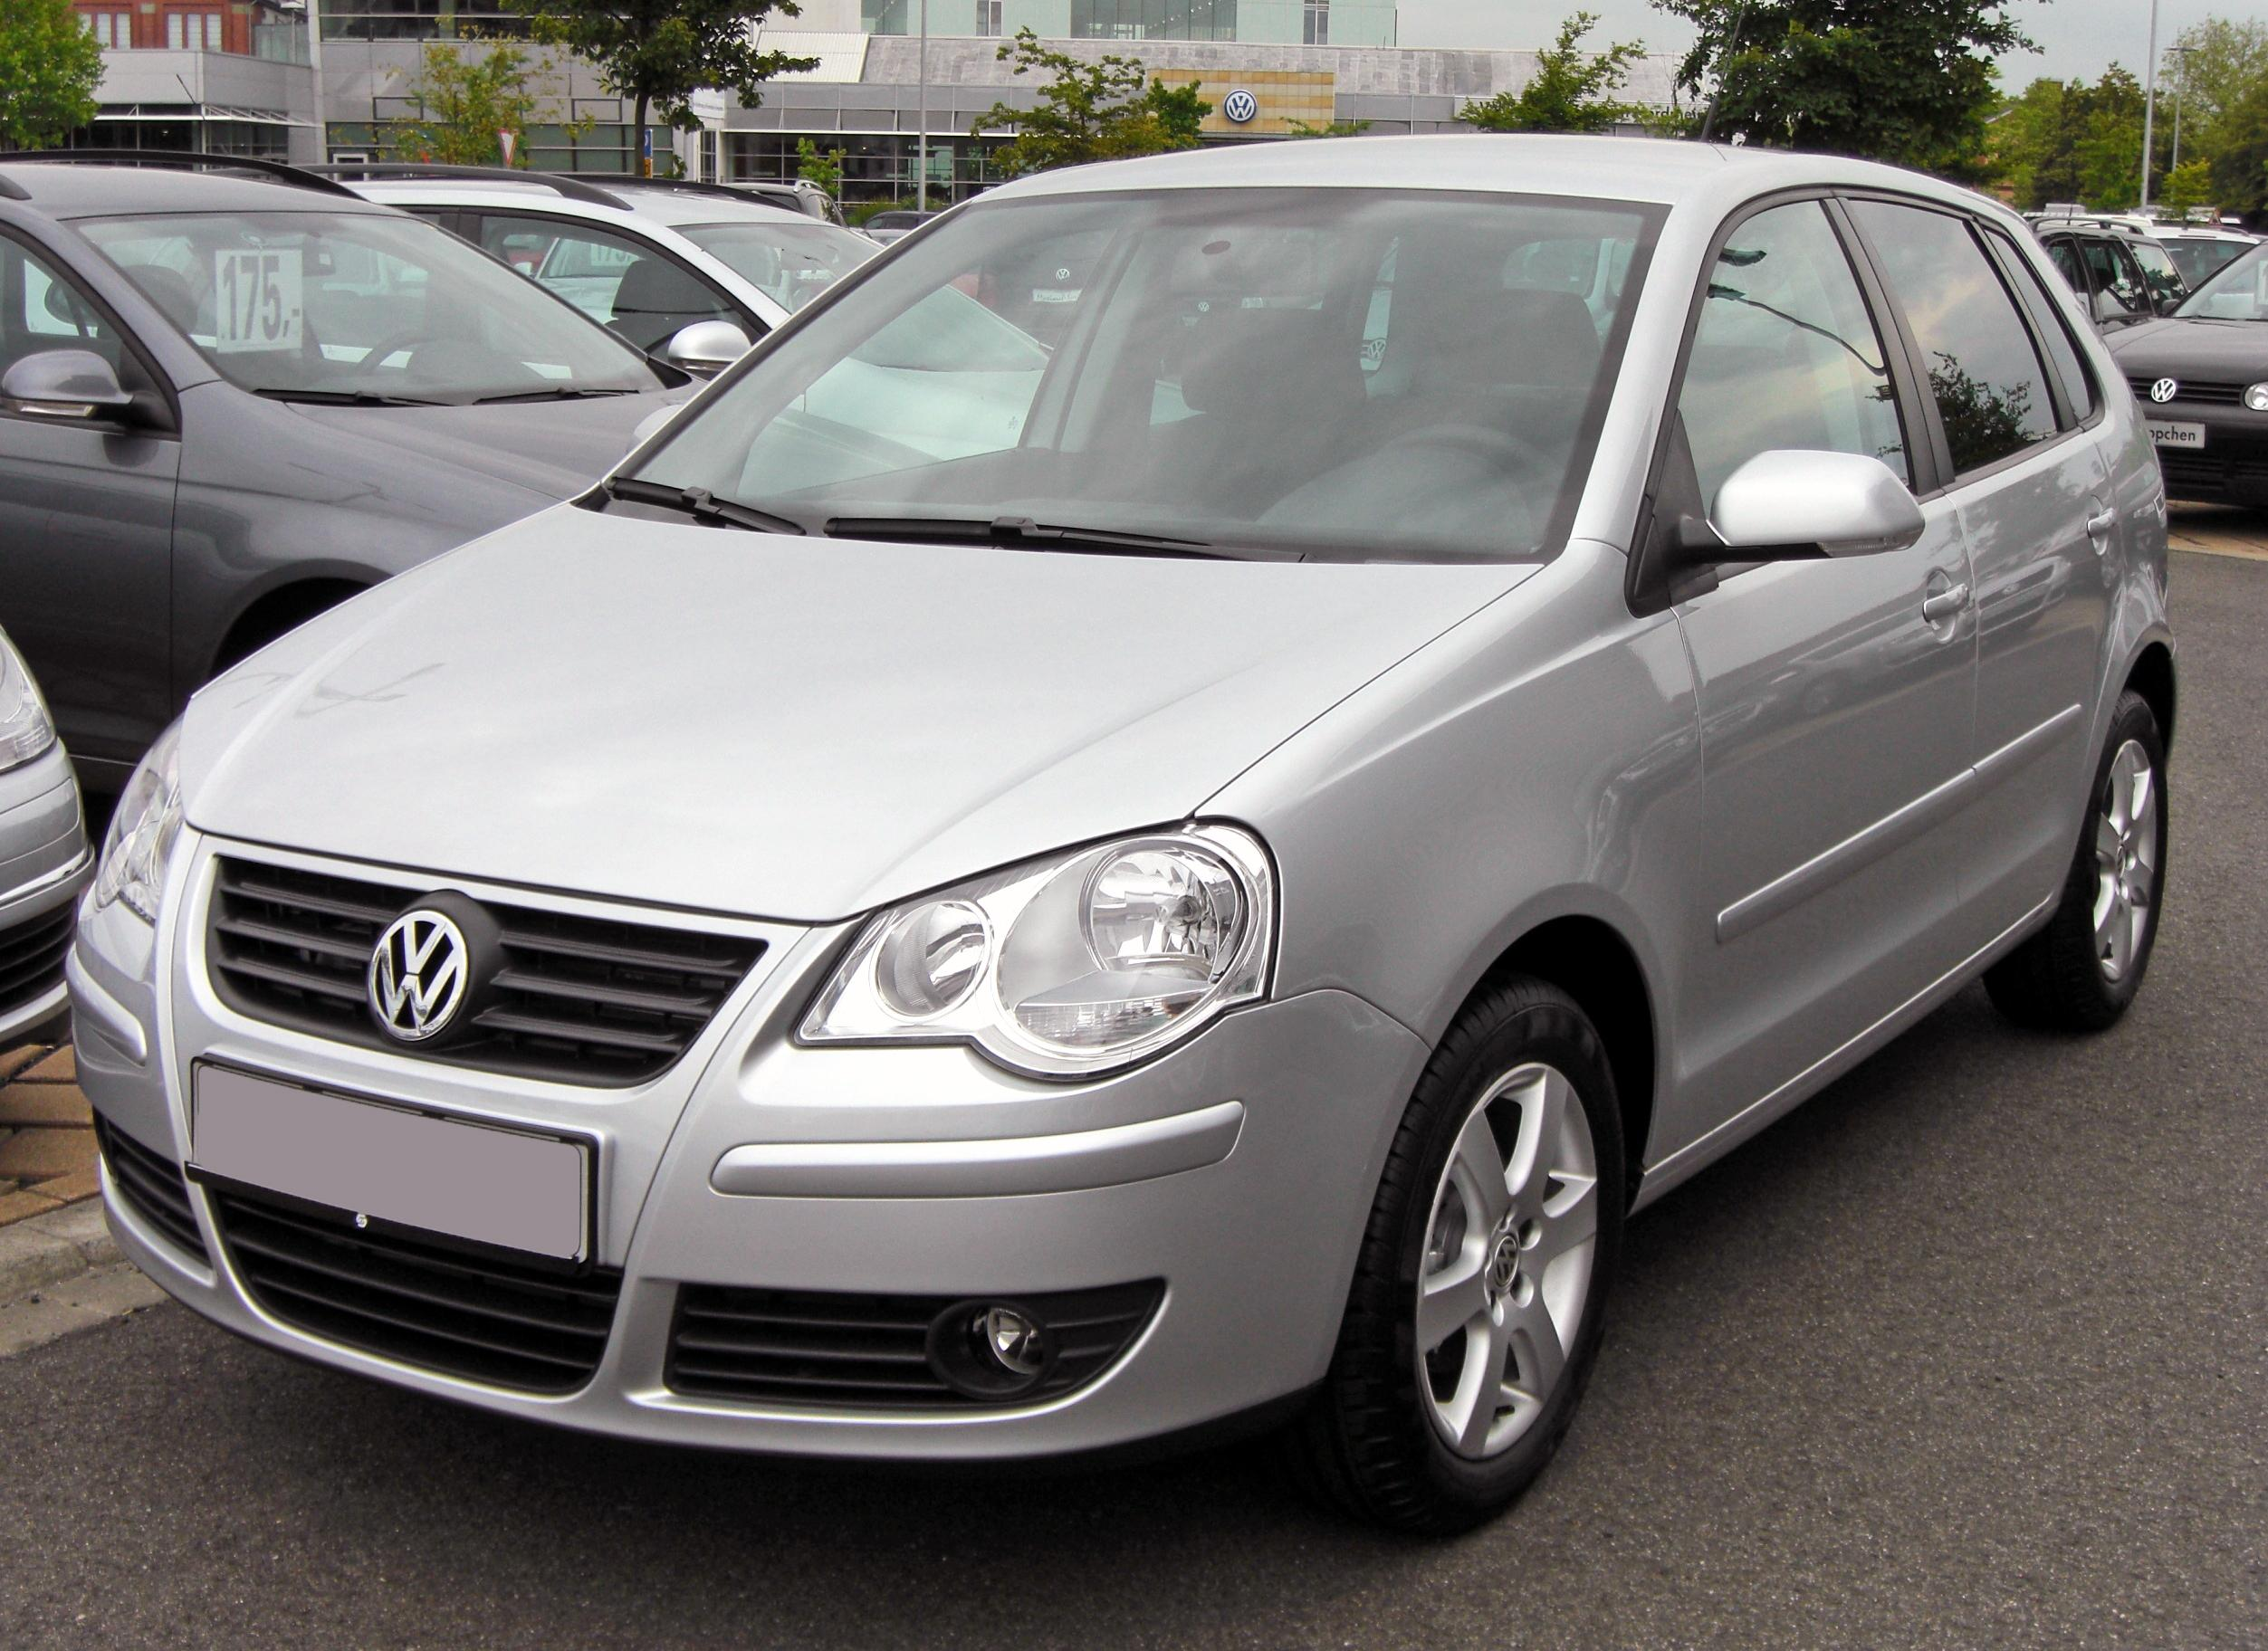 Description VW Polo IV Facelift Silver Edition 20090620 front.JPG